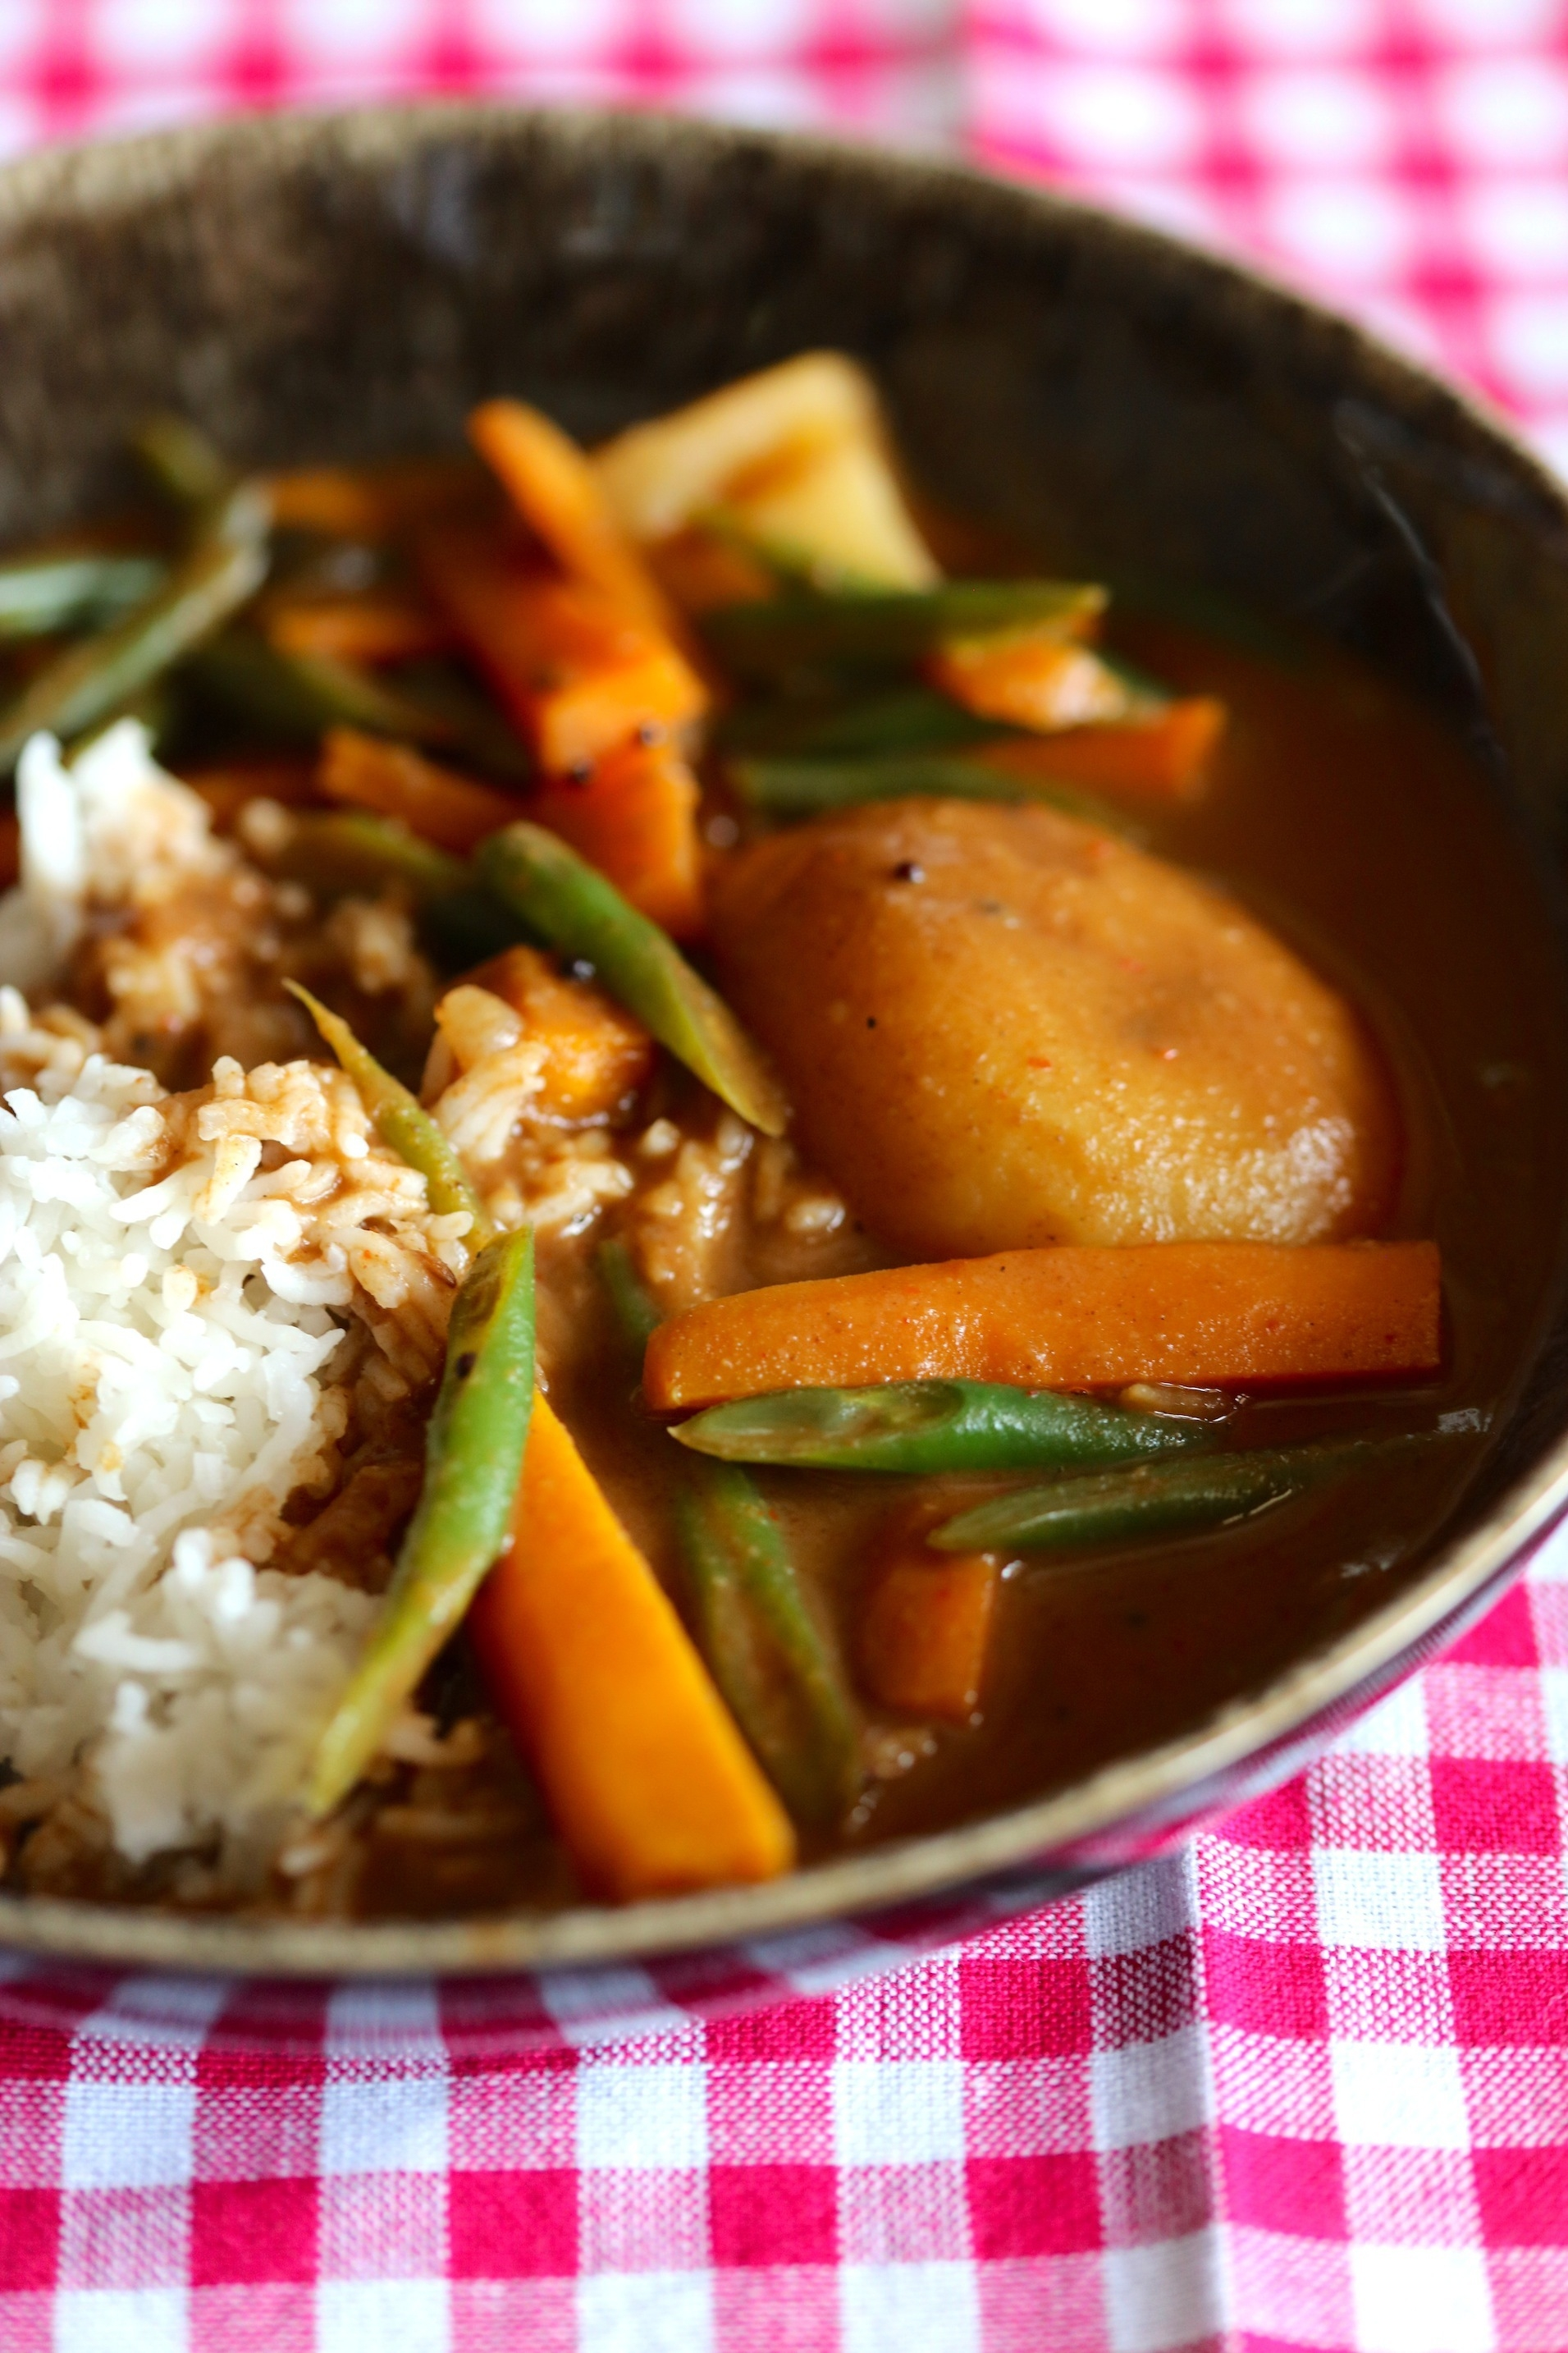 SINDHI KADI- CHICK PEA FLOUR CURRY WITH VEGETABLES